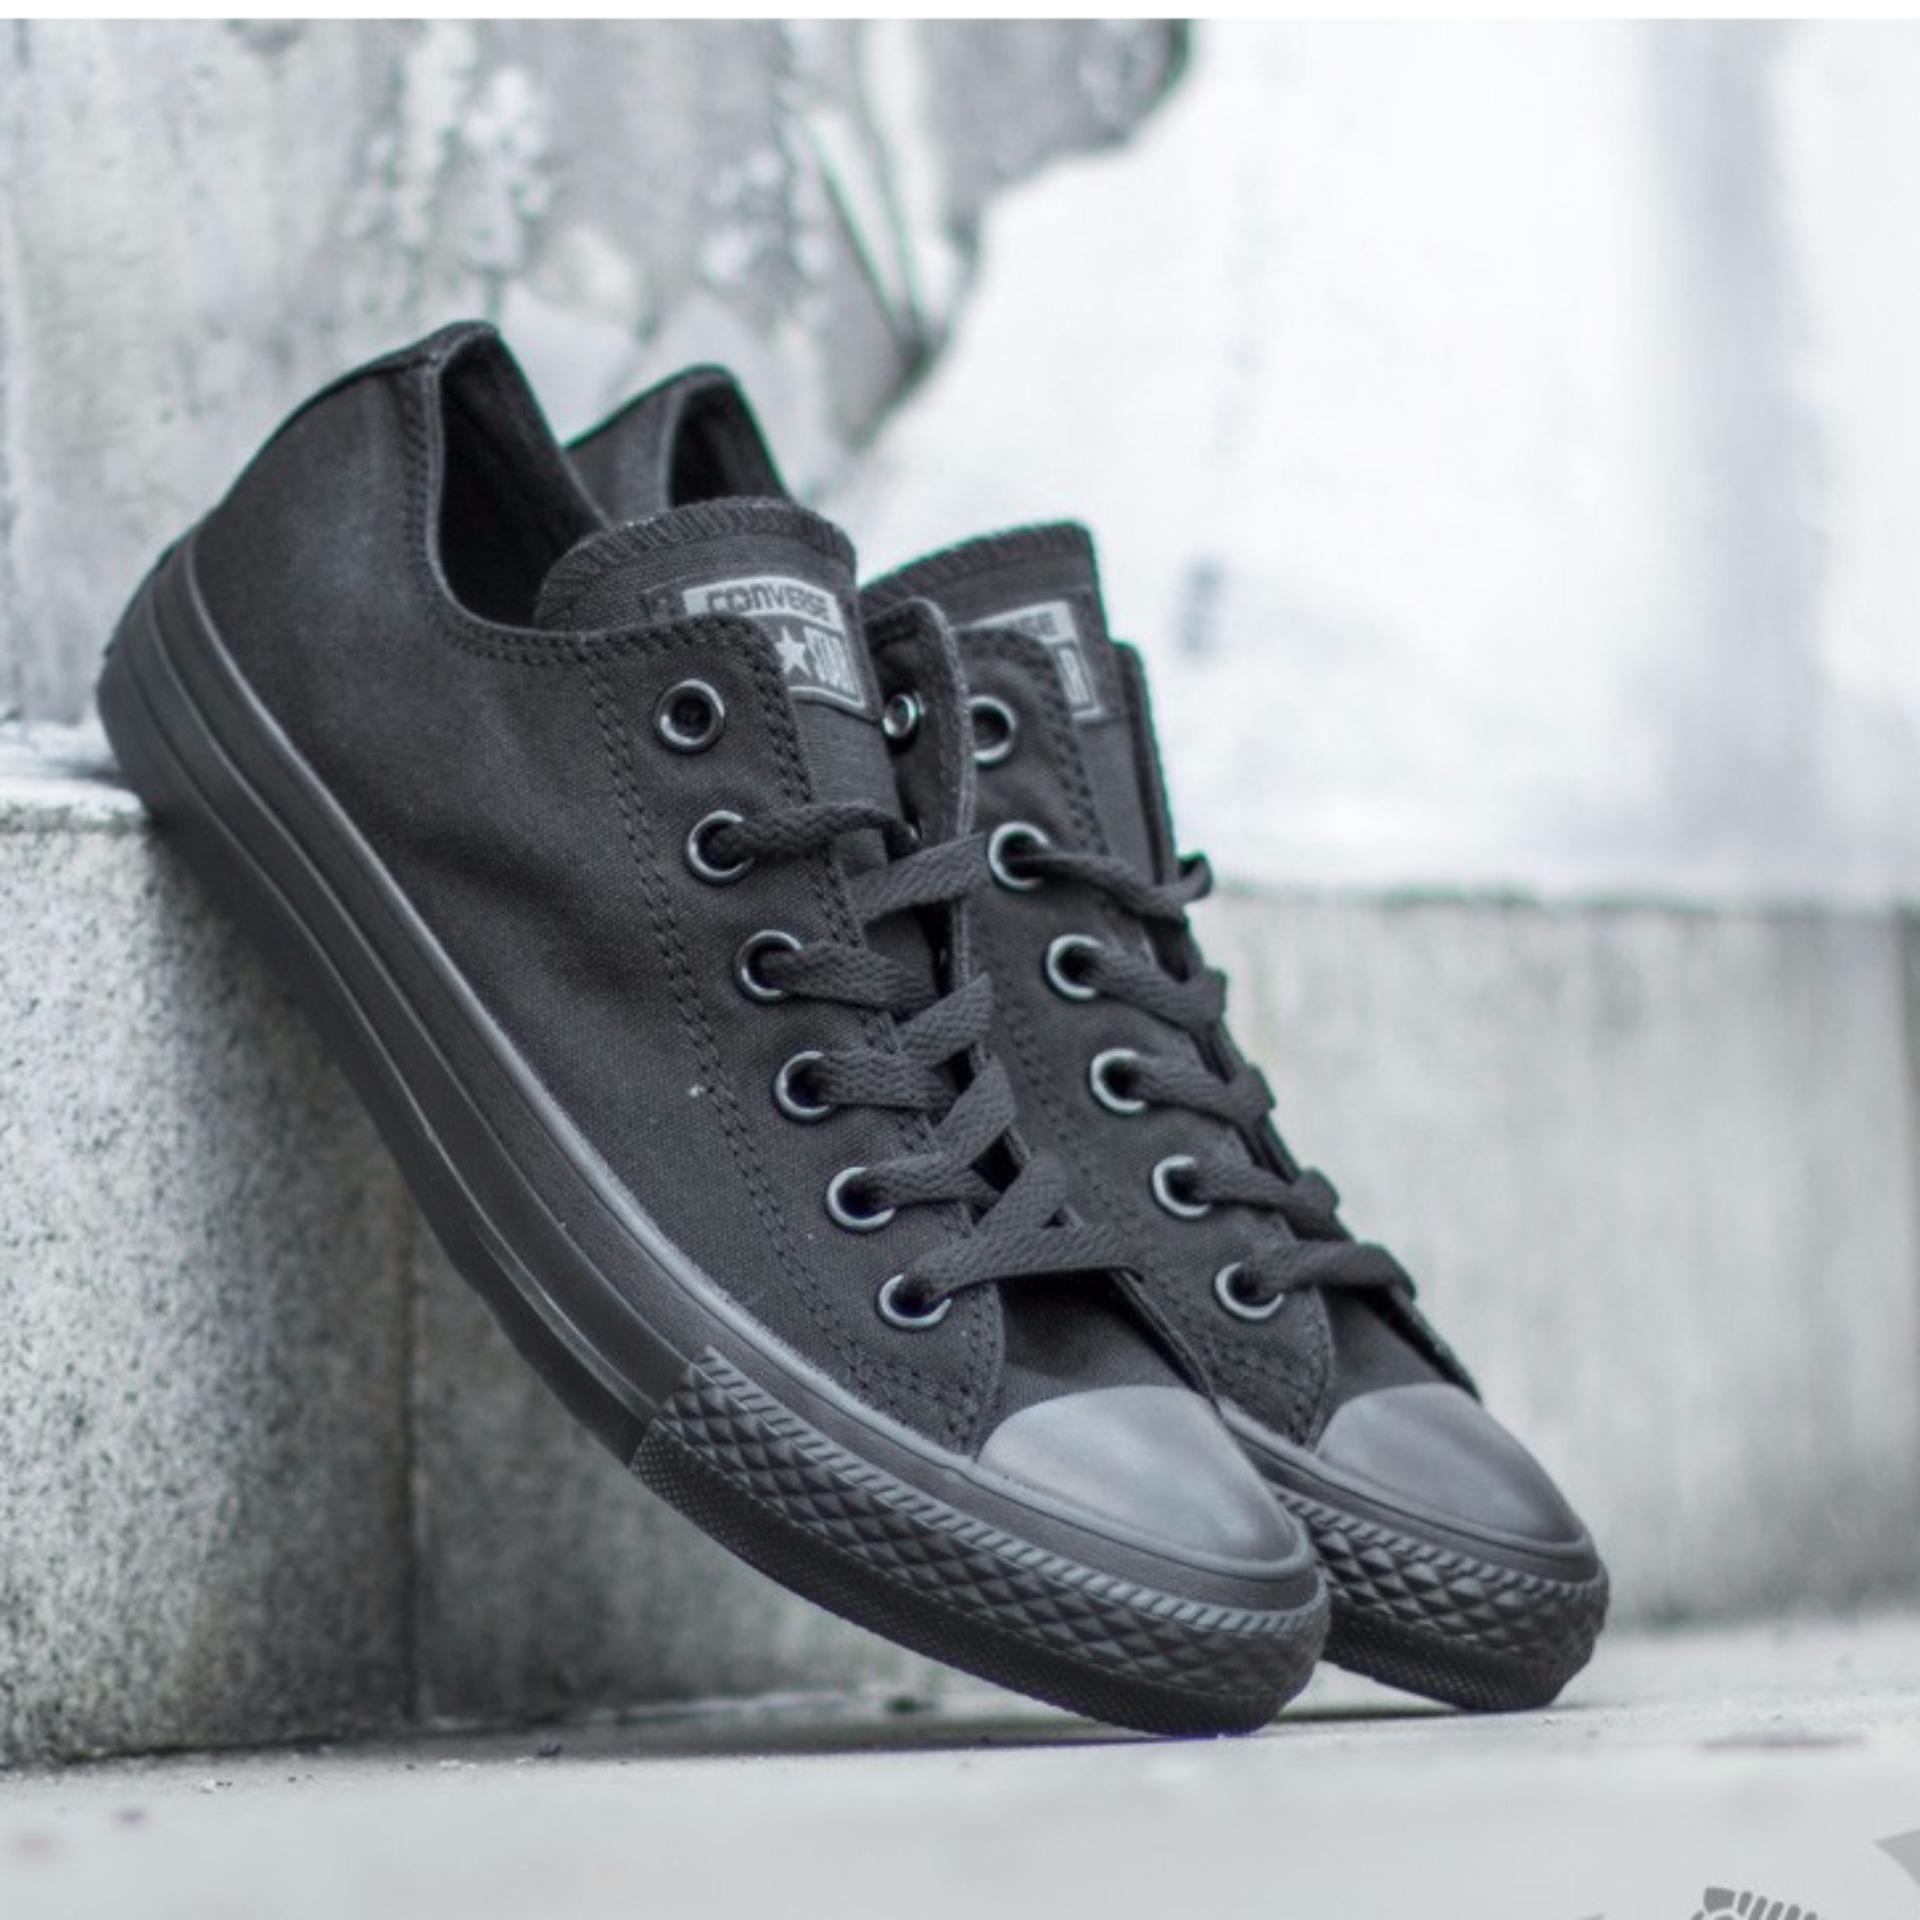 Sepatu All Star CT Classic Low Cut Sneaker FreeStyle Unisex - FullBlack . 7c40fffdb5